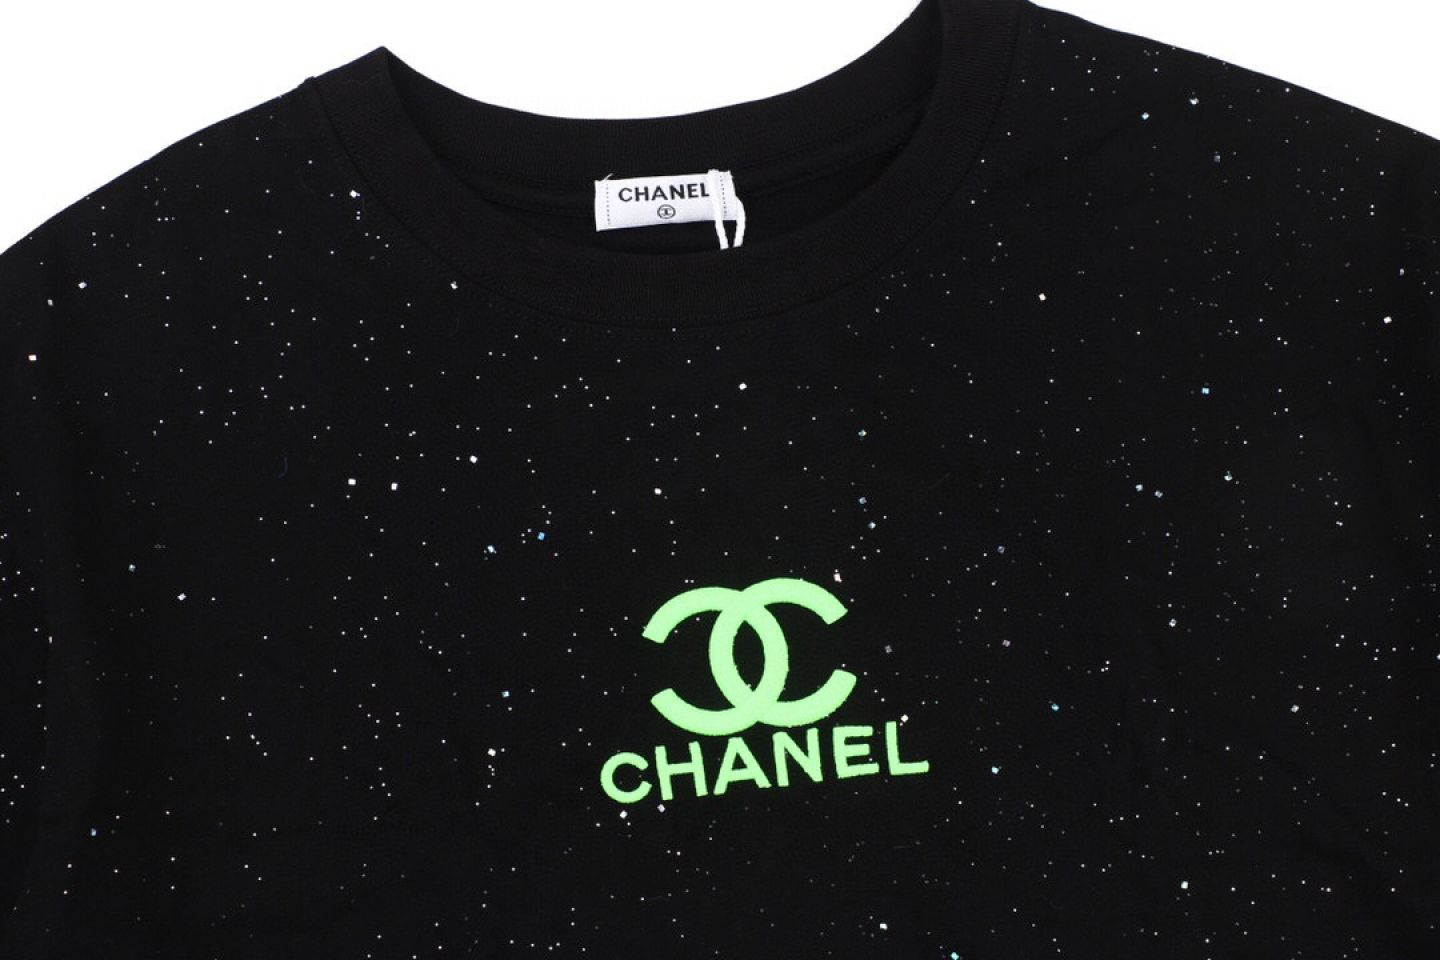 Shirt CHANEL20Ss starry green fluorescent embroidery short sleeve 2 chanel20ss_starry_green_fluorescent_embroidery_short_sleeve__2